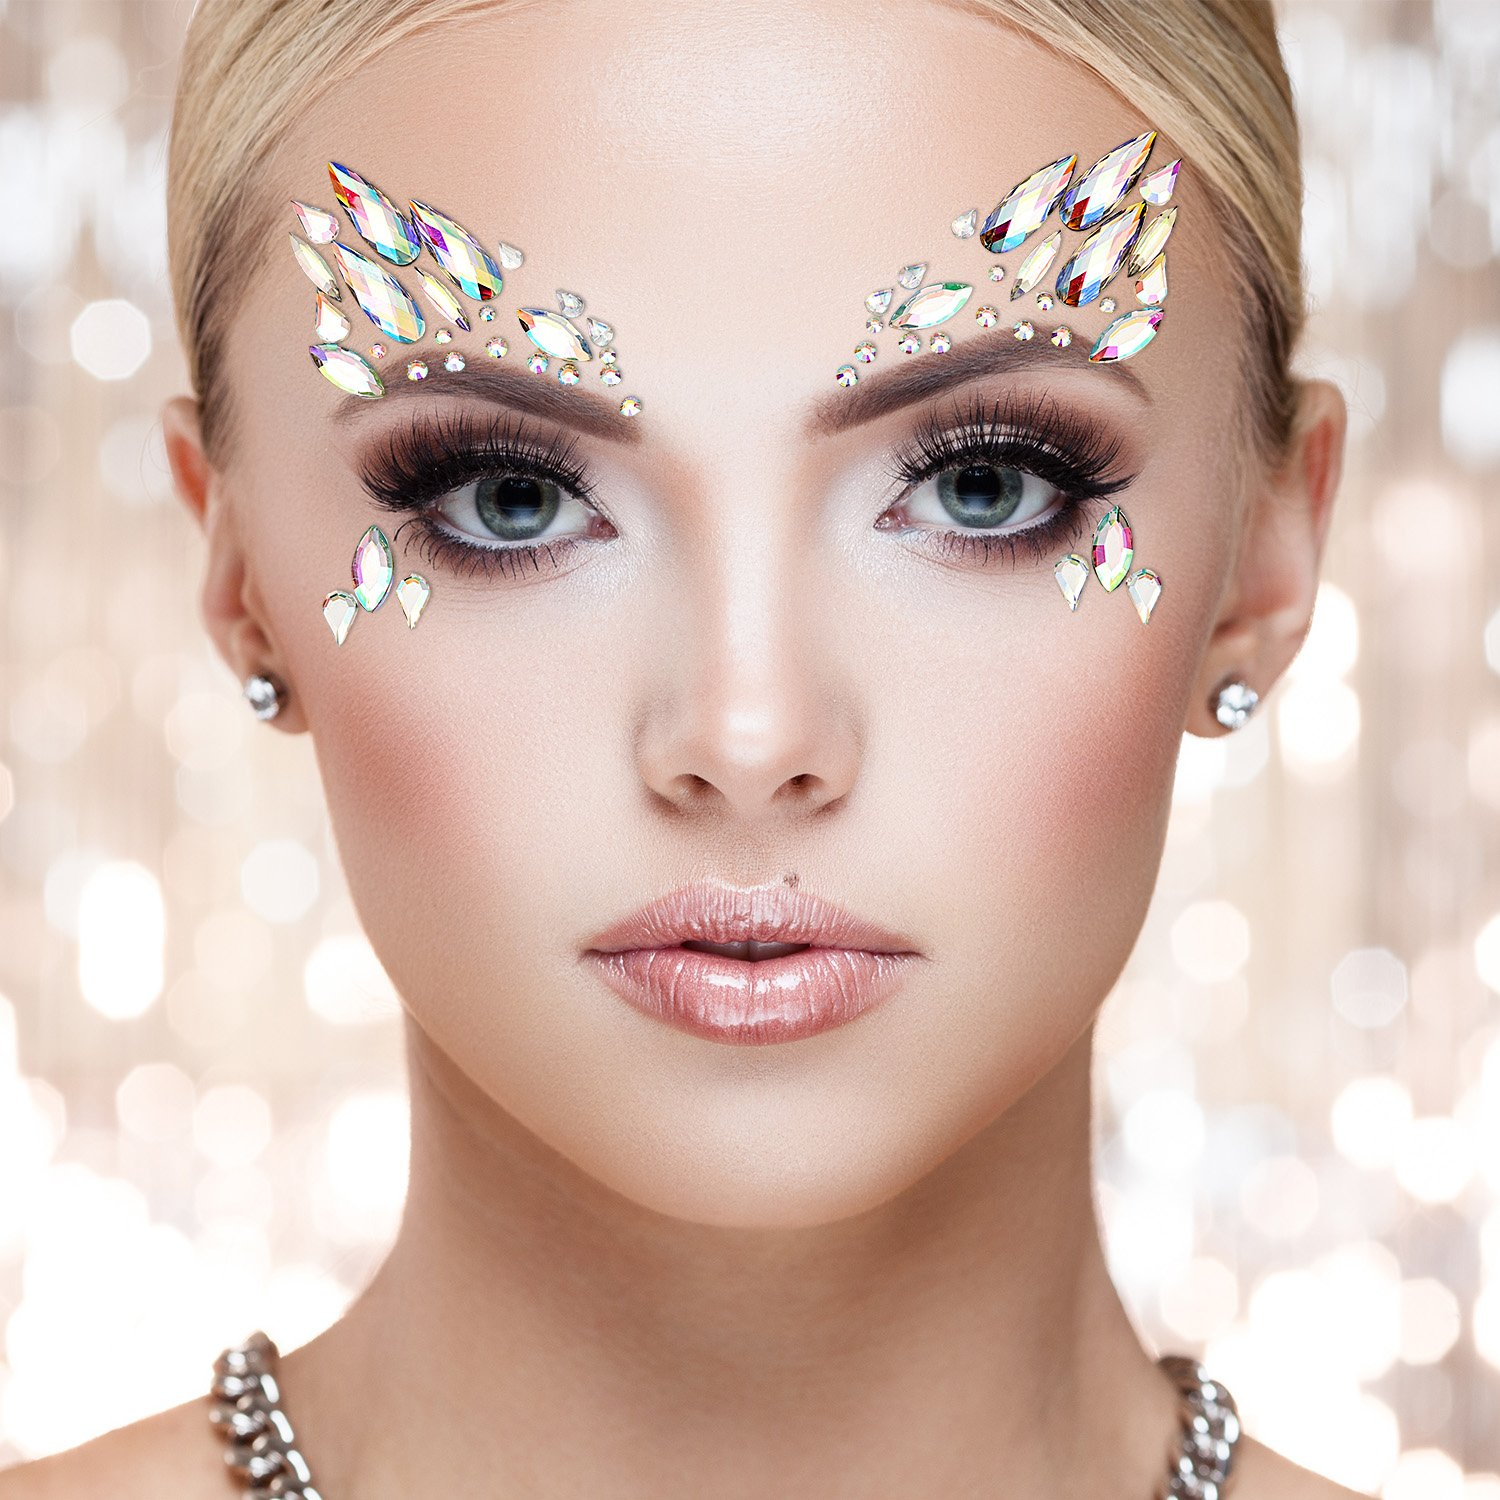 TOODOO 8 Sets Face Gems Rhinestone Colorful Sticker Tattoo Jewelry Stick on Face Festival Jewels for Forehead Body Decorations (Style 1) by TOODOO (Image #5)